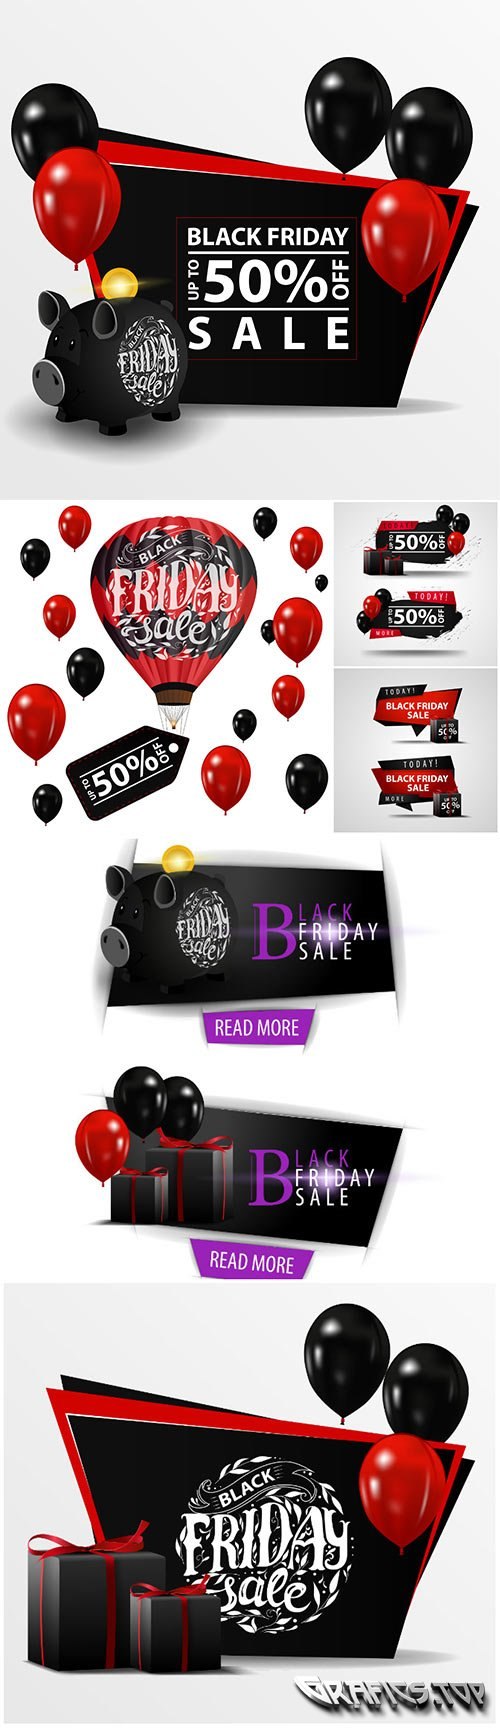 Black Friday sale vector banner with black piggy bank